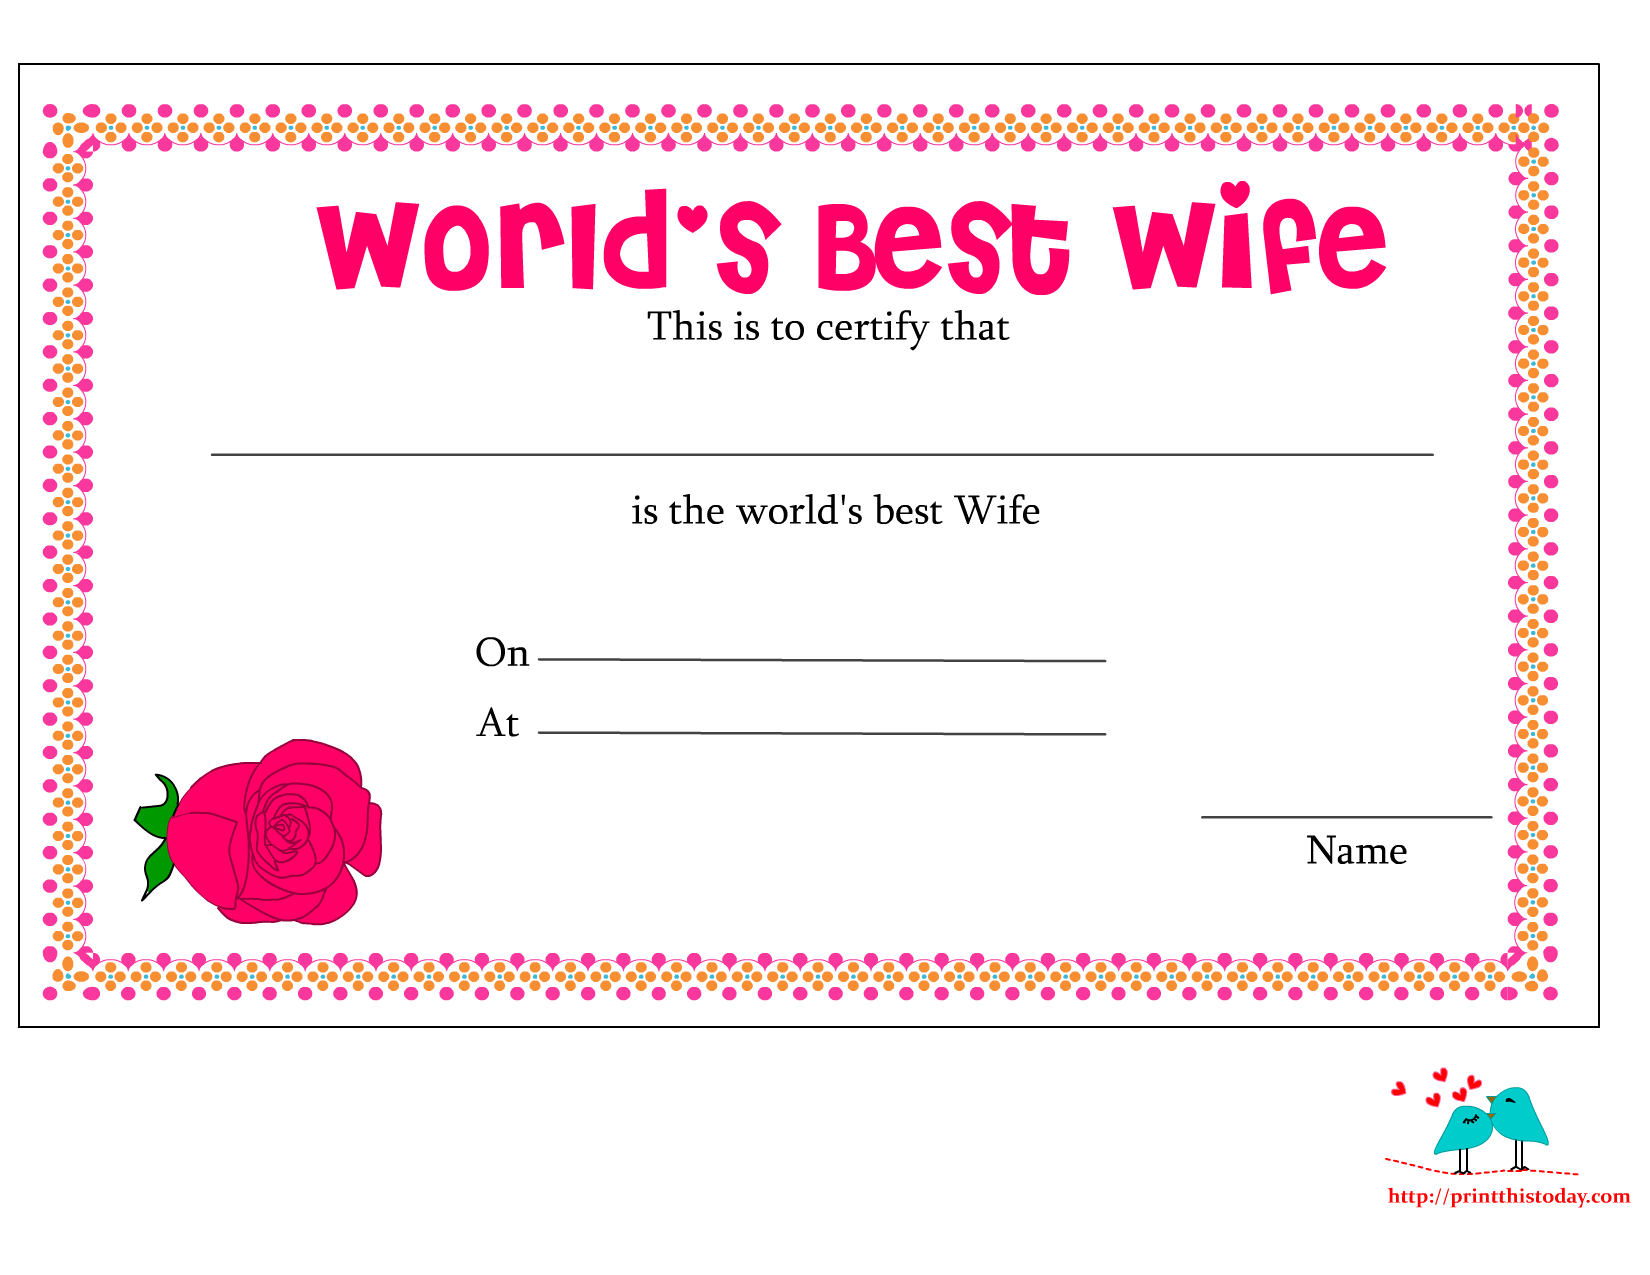 Worldu0027s Best Wife Certificate With Red Rose  Free Printable Anniversary Cards For Her